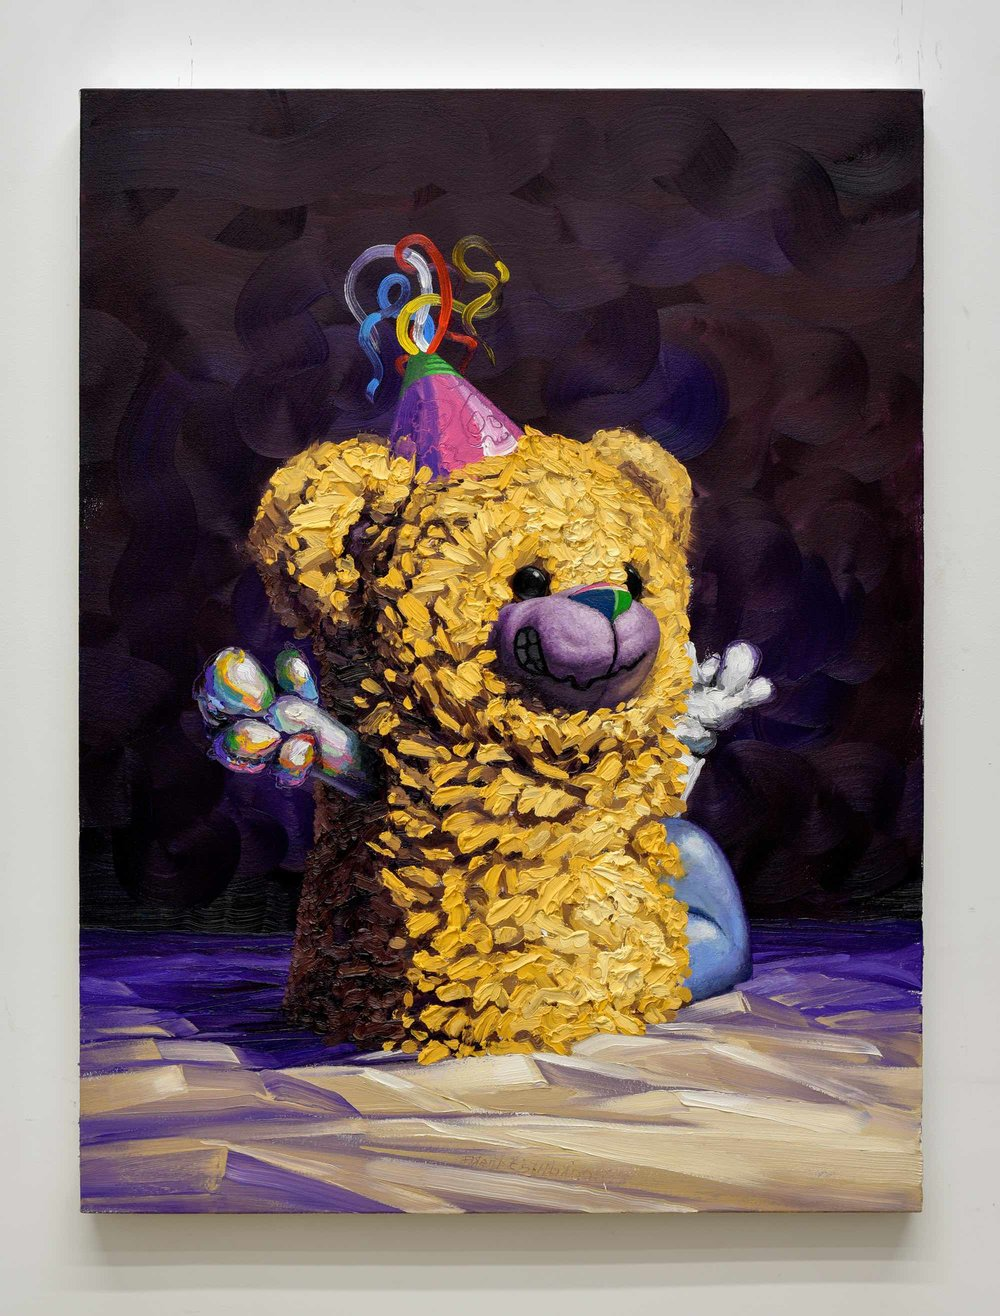 """gimmie a hug"" oil on canvas, 40""x30"" (102cm x 76cm), 2018"